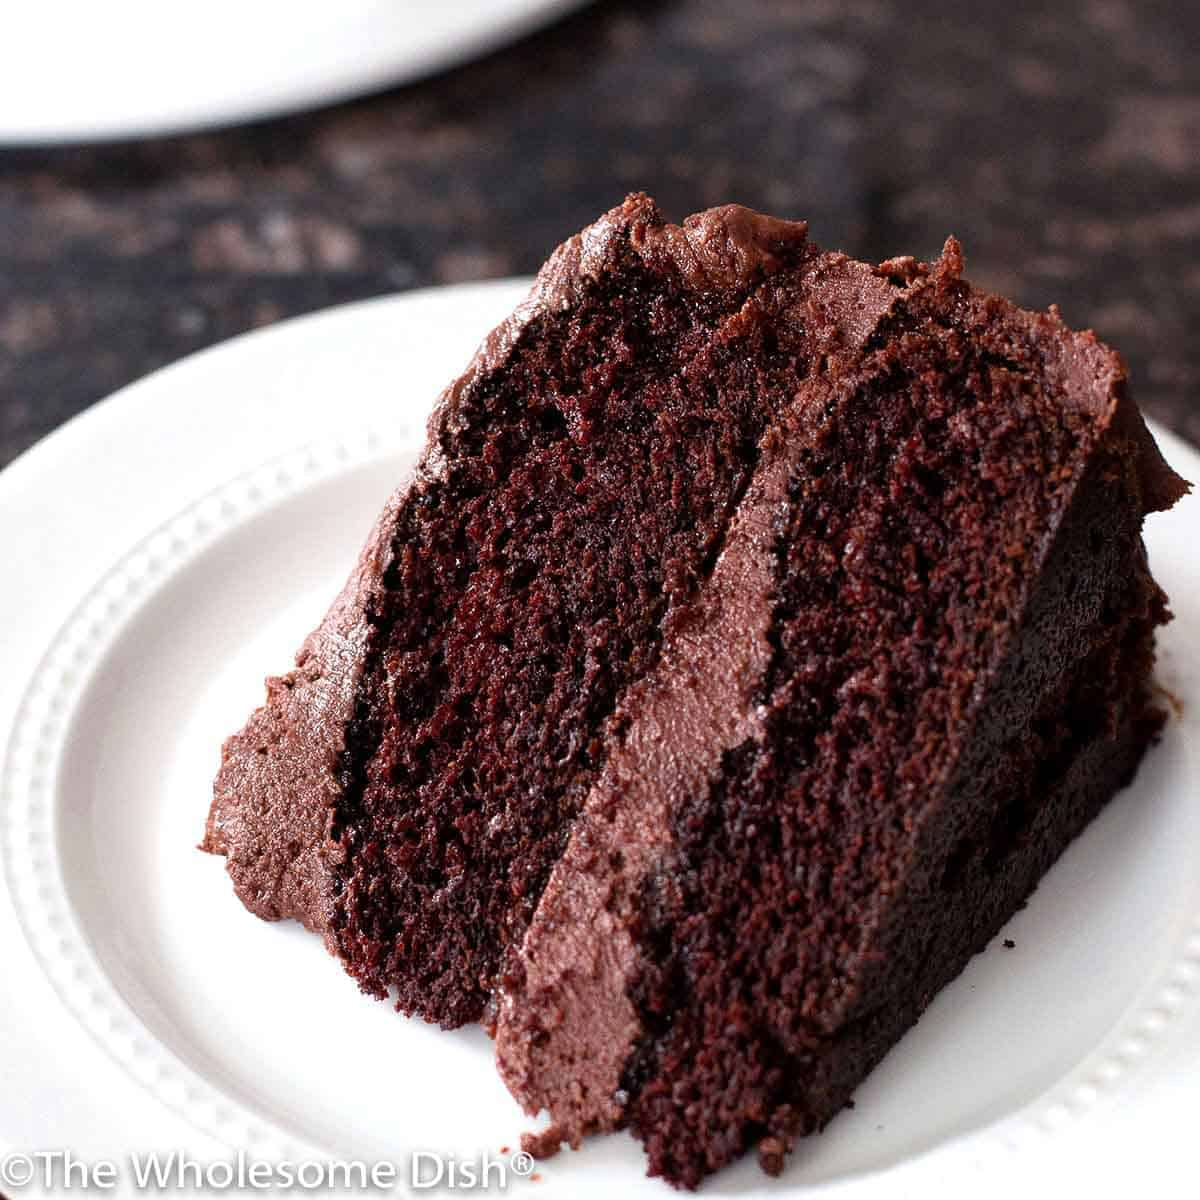 slice of homemade chocolate cake with chocolate frosting on a white plate